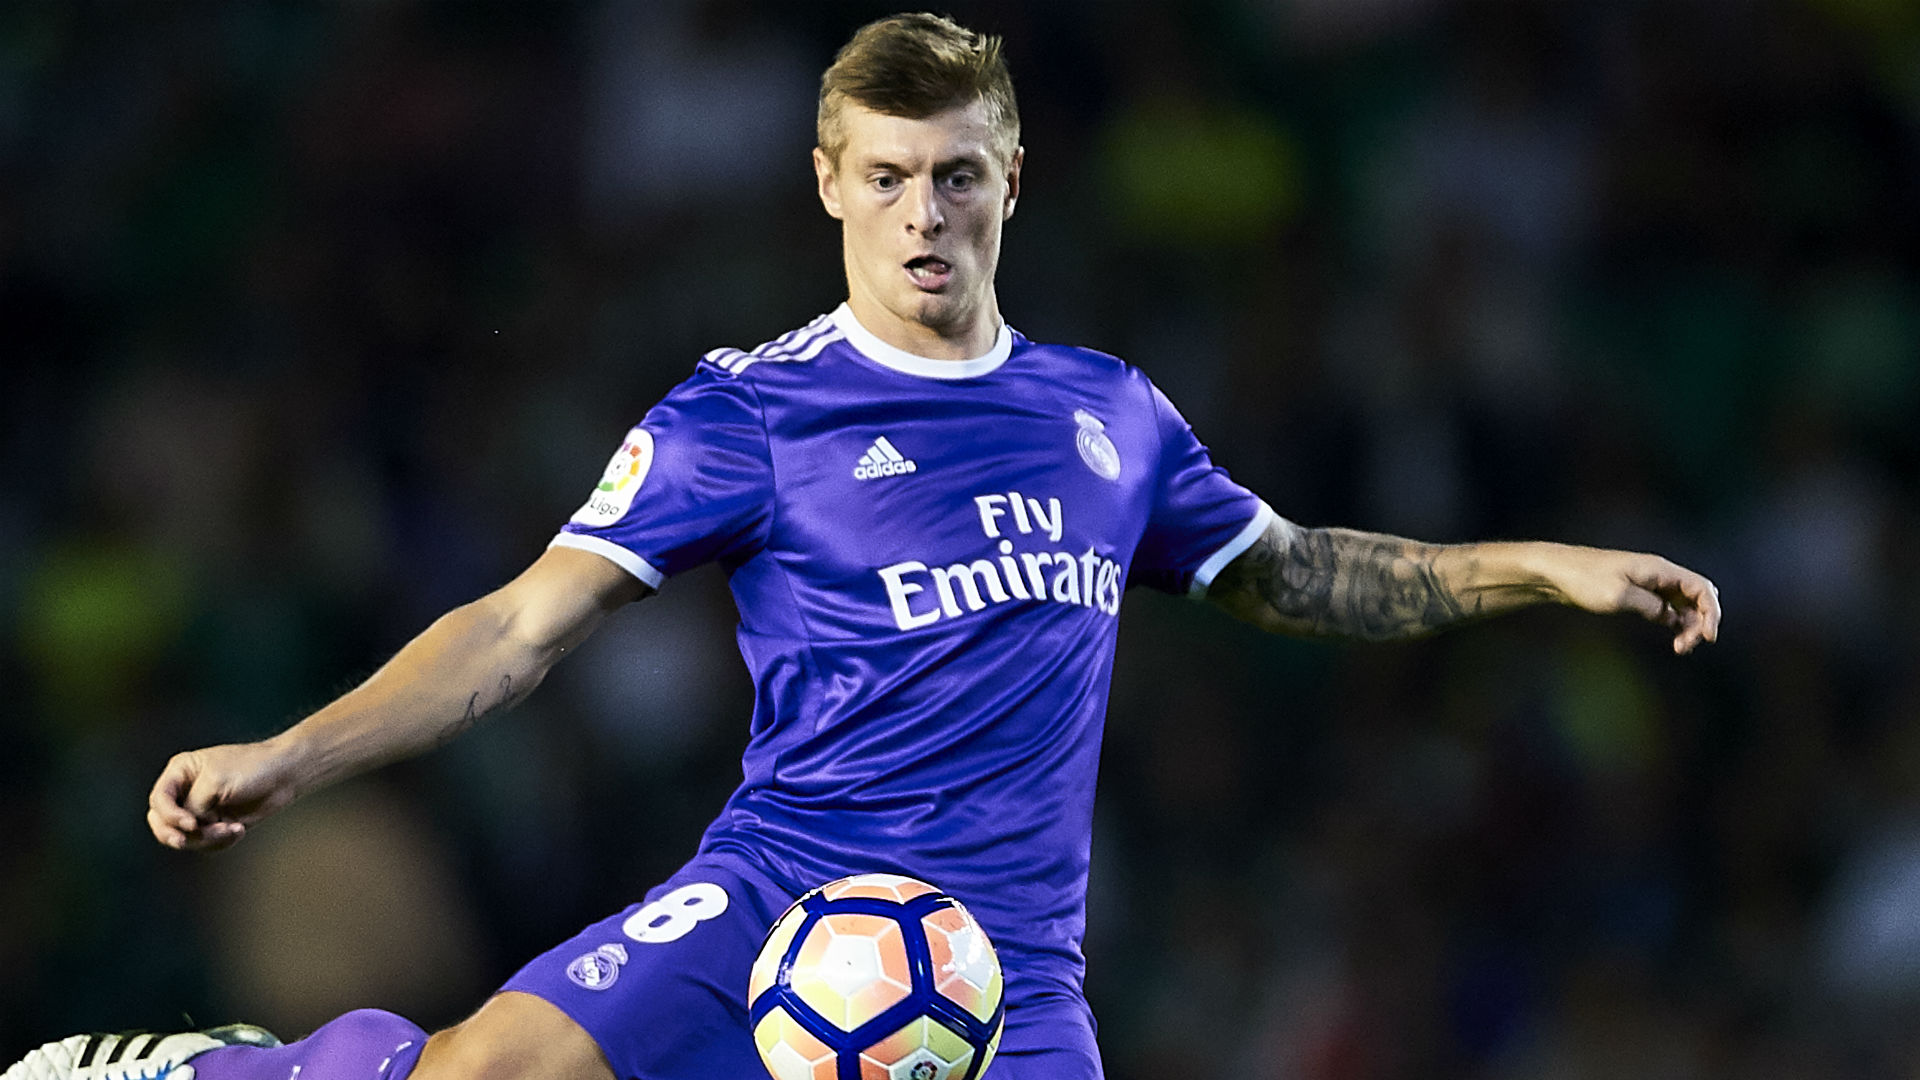 Germany's Toni Kroos to miss San Marino, Italy matches